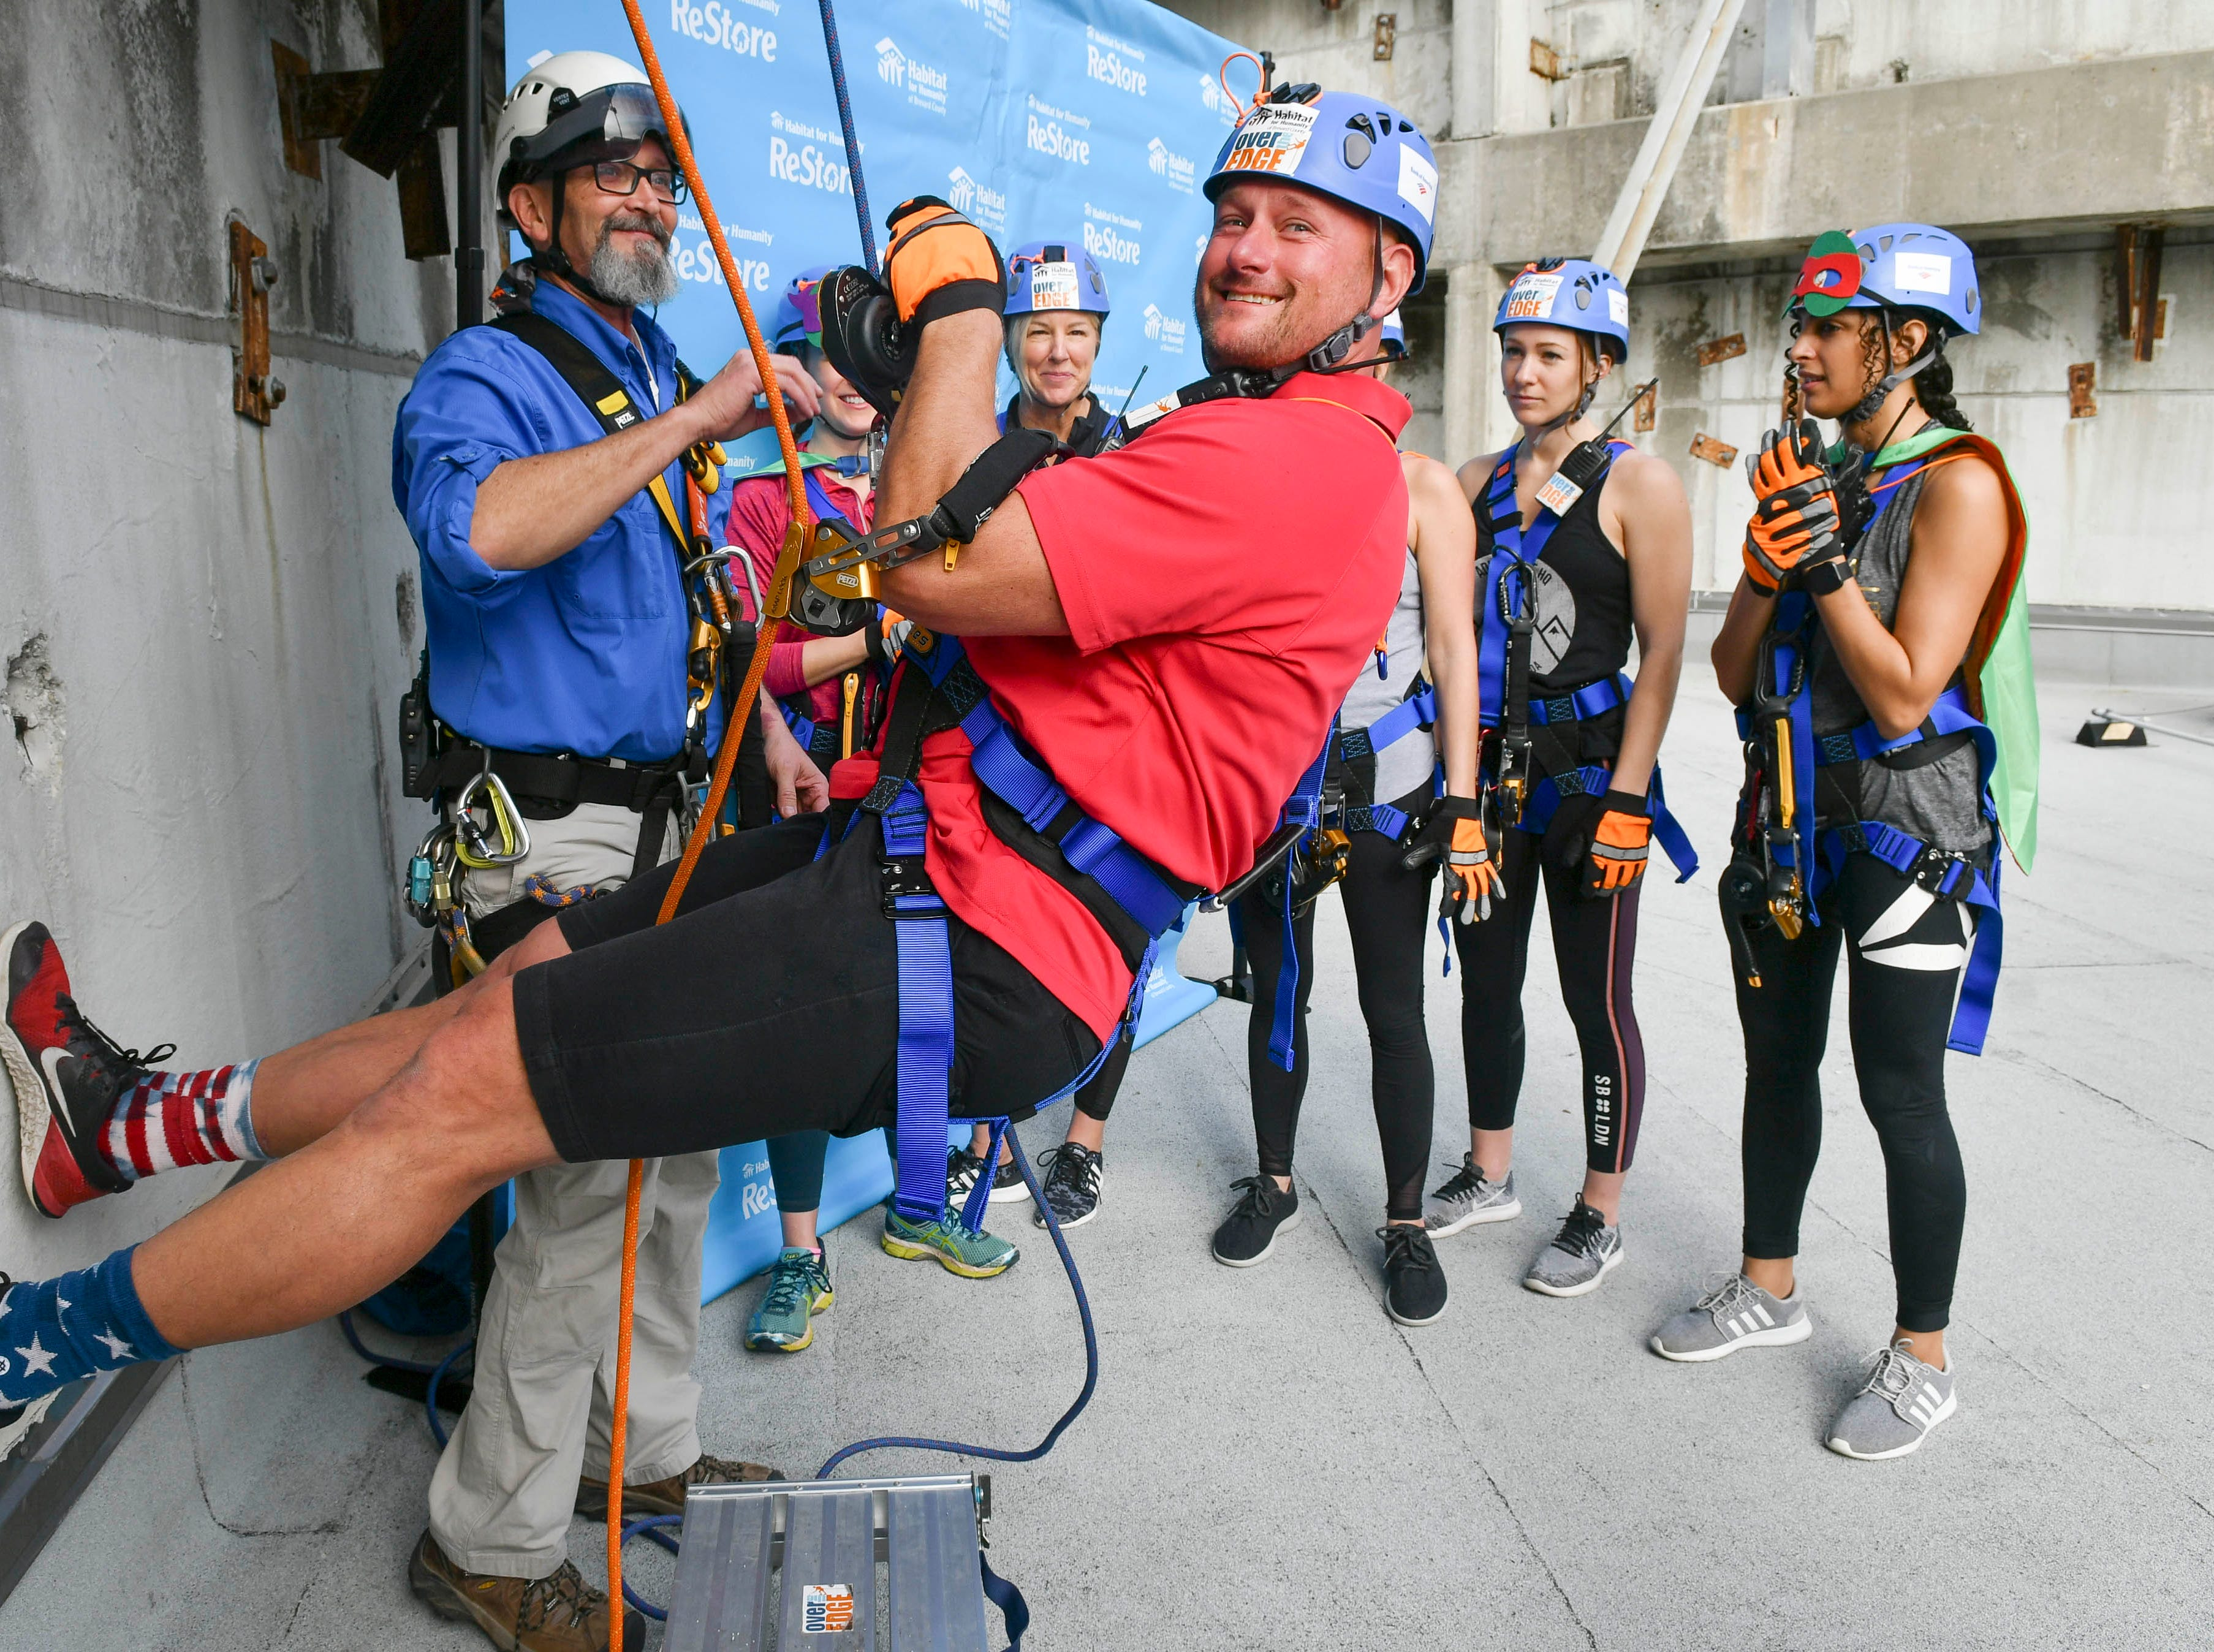 Dan Coe gets instruction from Jeff Martin before he goes Over the Edge at the Melbourne Rialto Hilton on Saturday morning. Over the Edge is a fundraiser for Habitat Humanity of Brevard, an organization that helps low-income families buy affordable houses. Teams and individuals raised money for the chance to rappel eight stories down the Hilton.